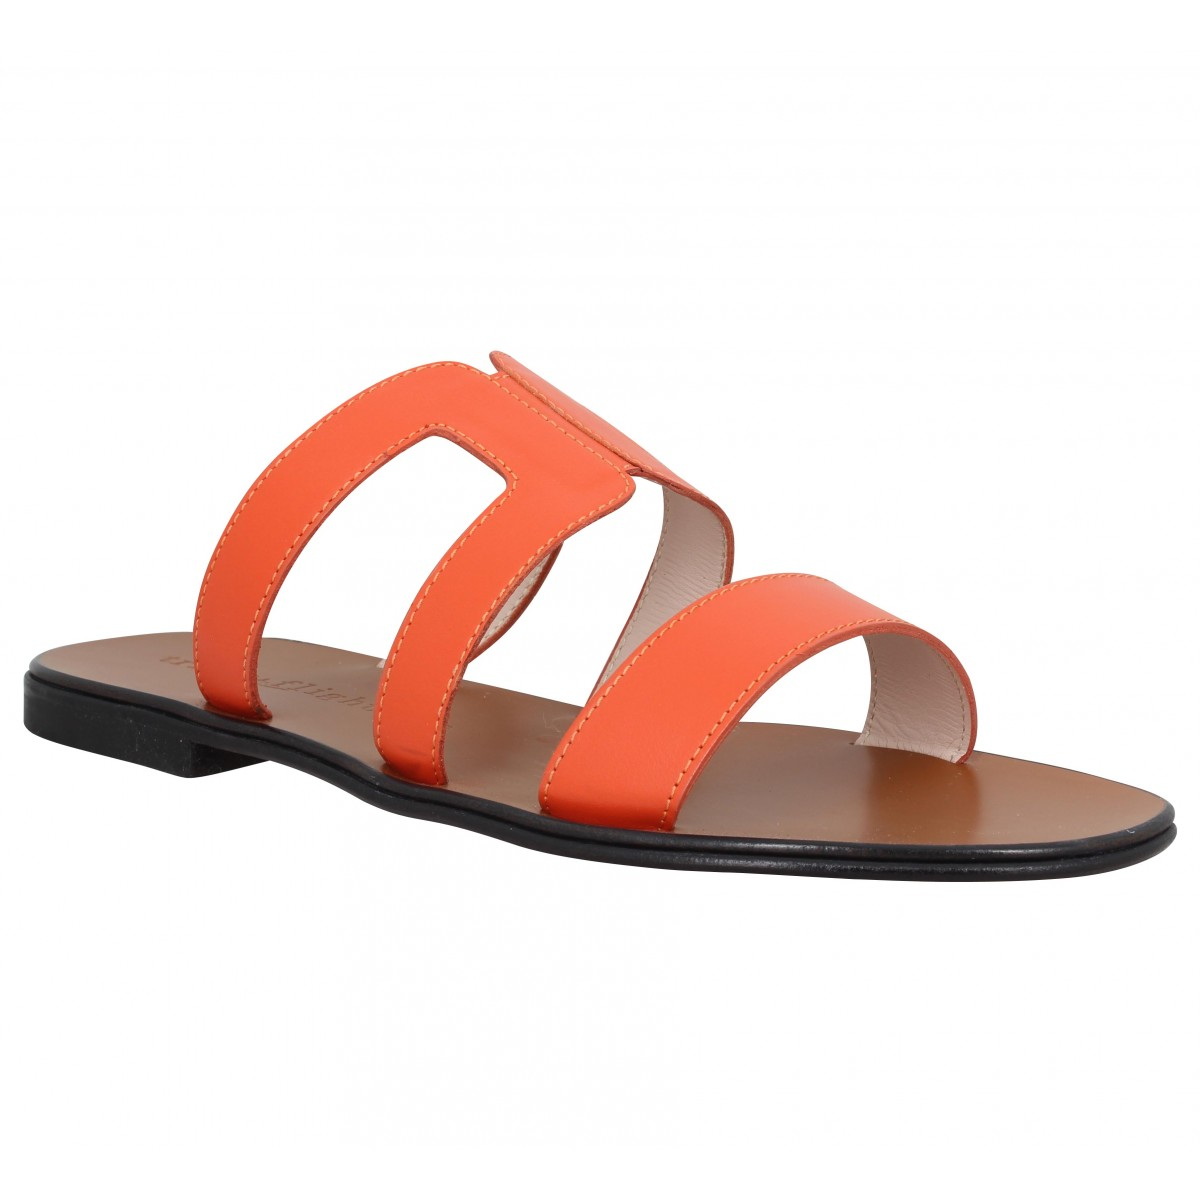 Mules TRIVER FLIGHT 13402 cuir Femme Orange